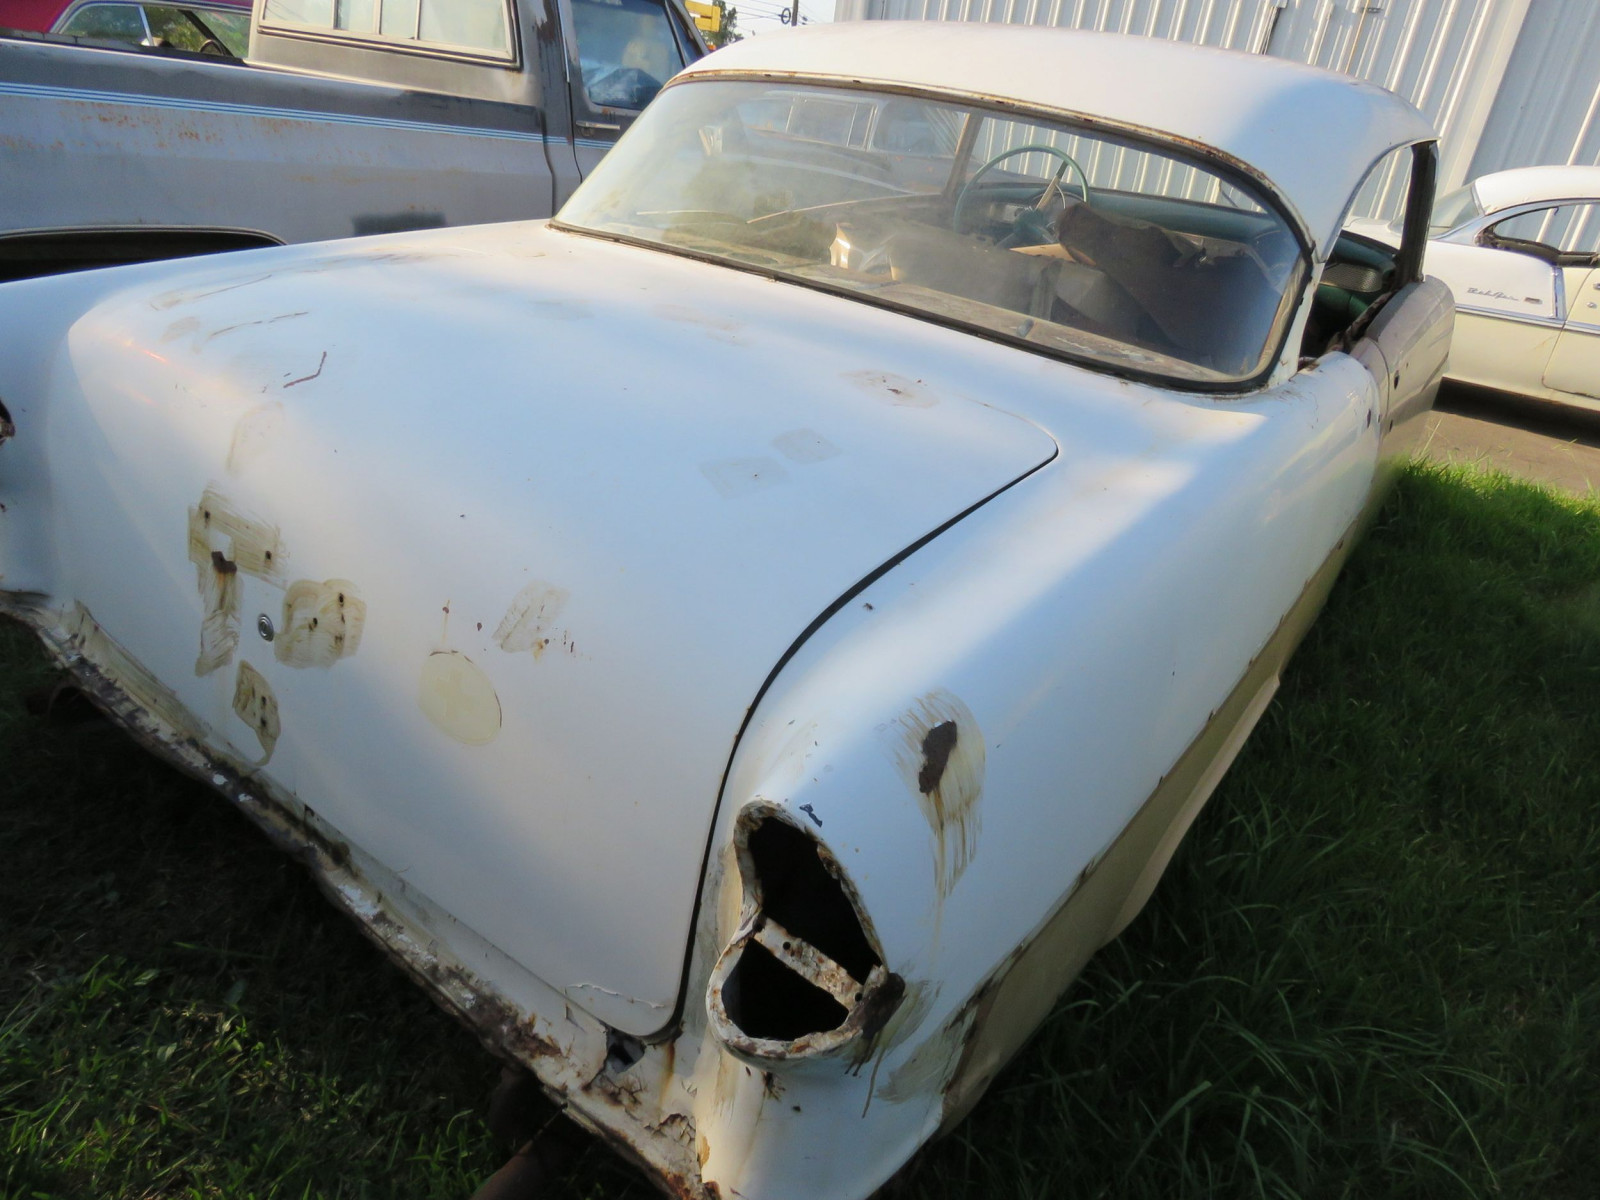 1955 Chevrolet for project - Image 5